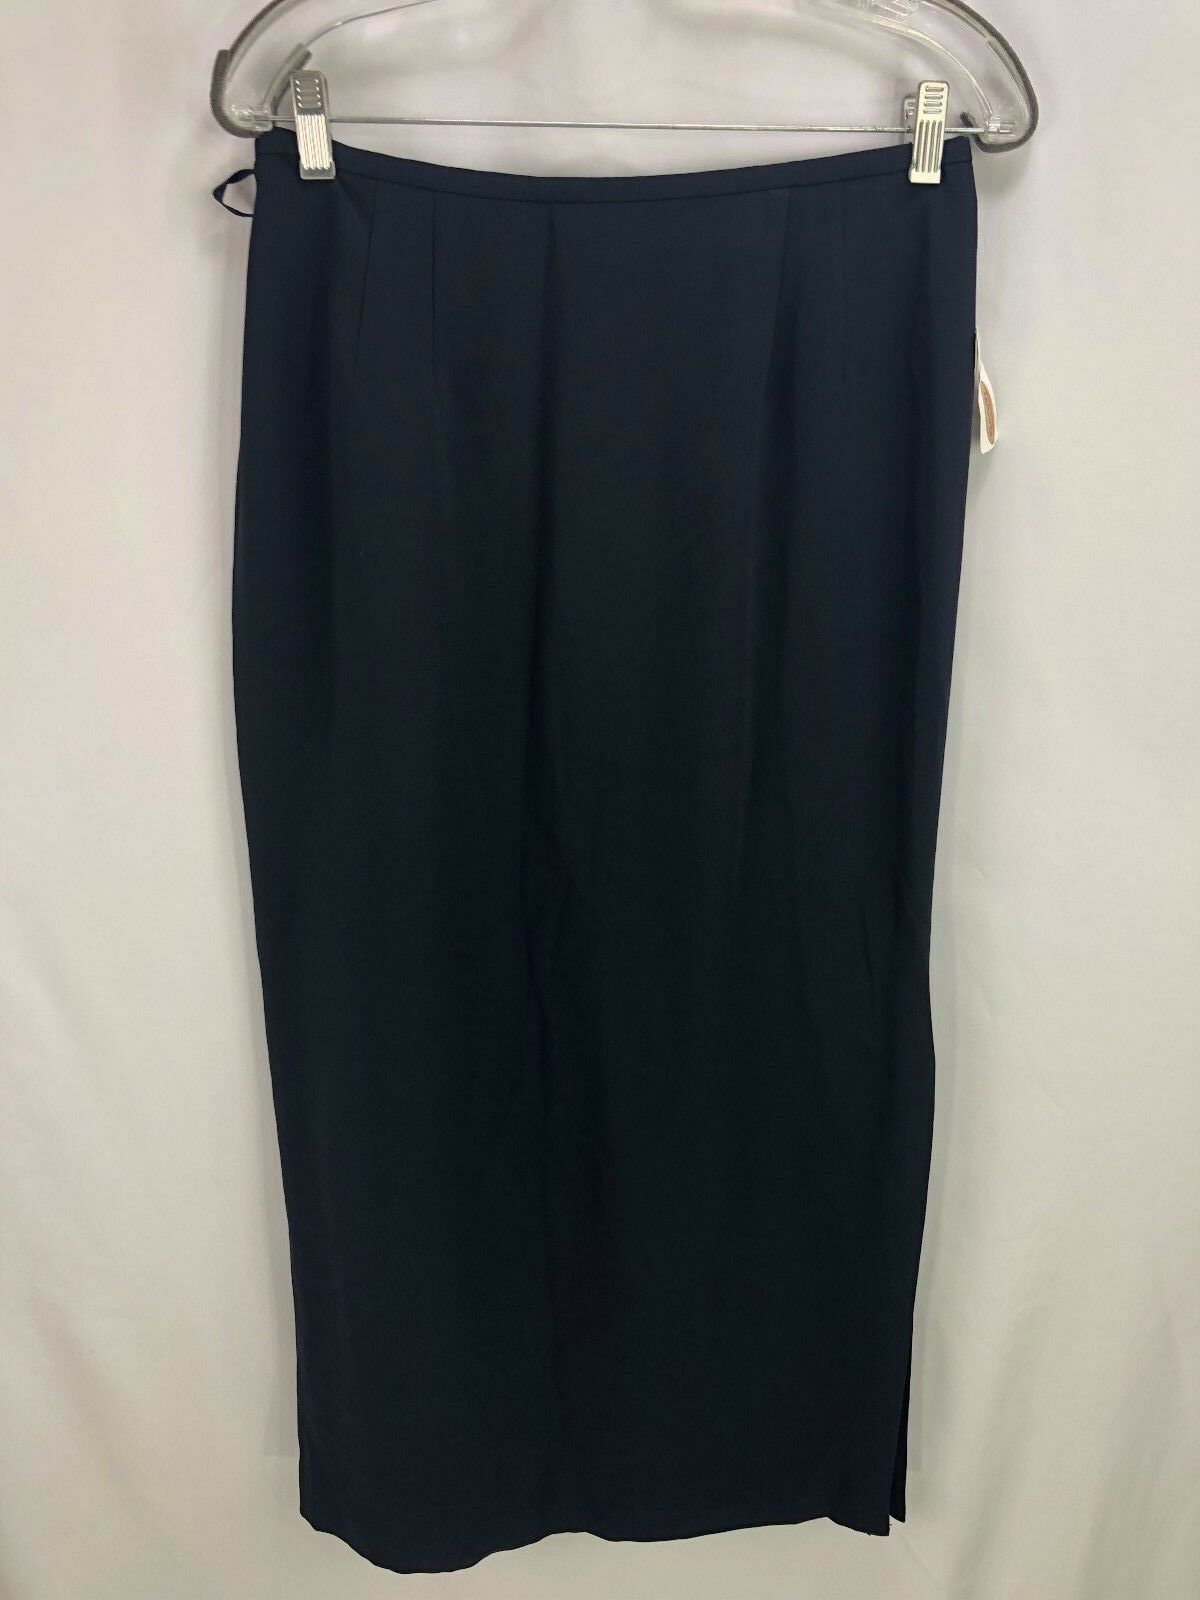 Talbots Women's bluee Long Skirt with slit Size 10 NWT Org  98